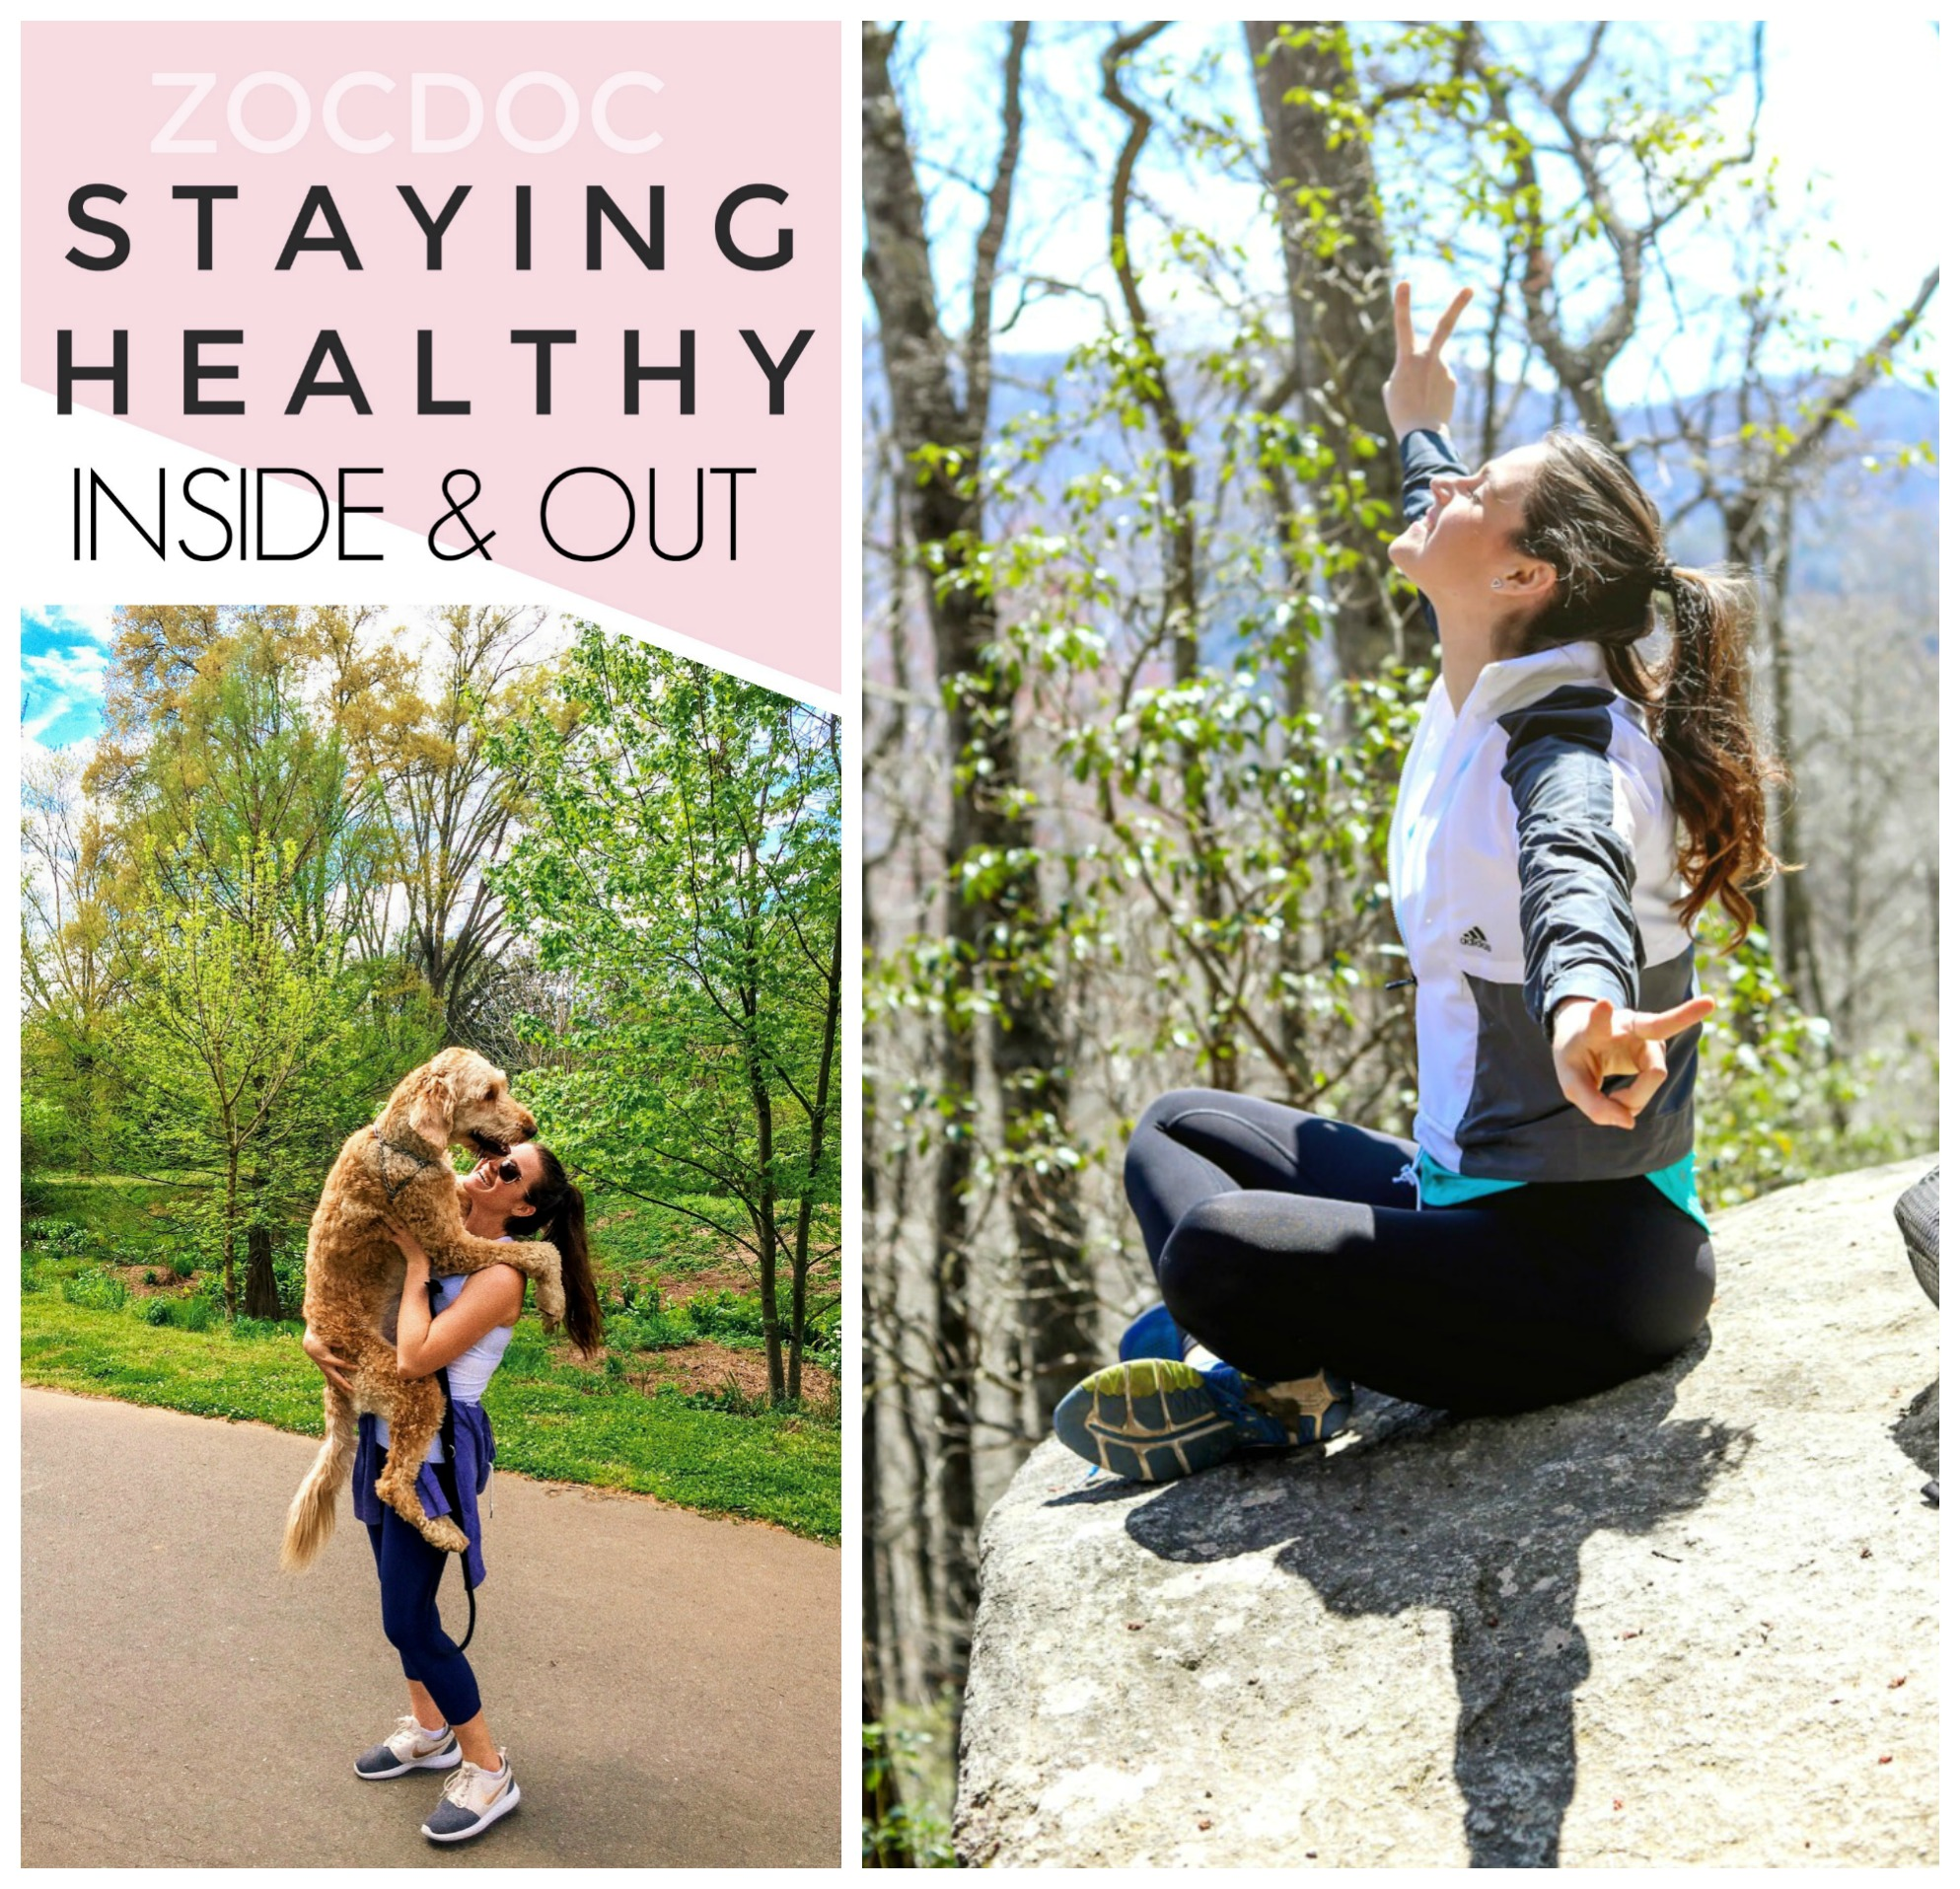 My Health Story + $100 Amazon Giveaway 🧘🏻 ♀️ - Simply